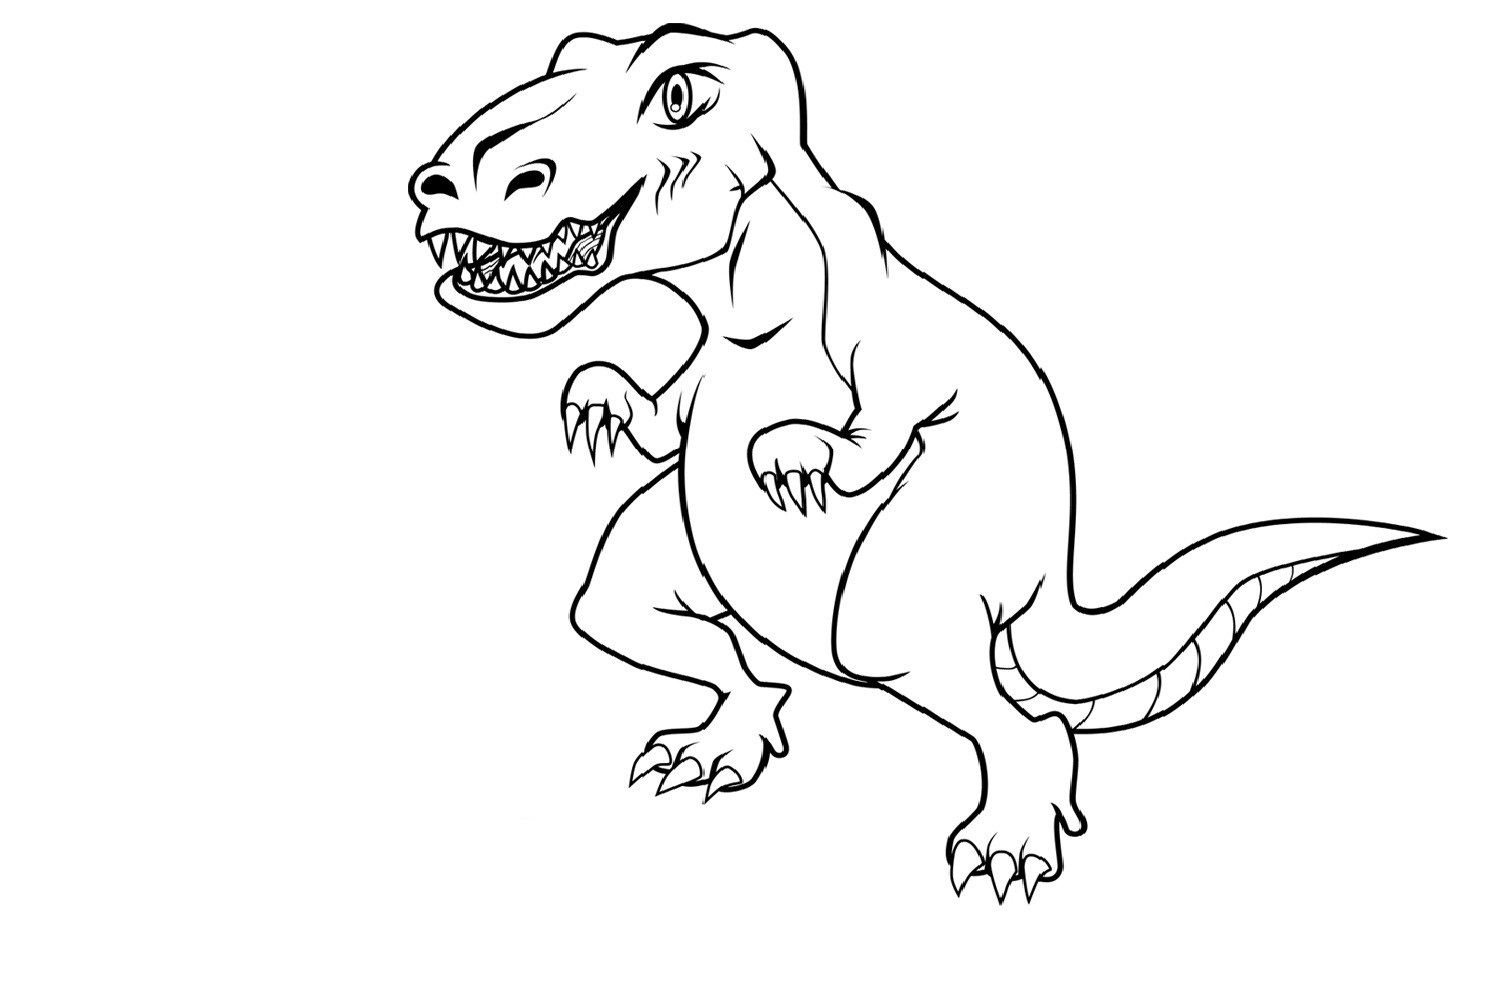 dinsaur coloring pages - photo#30